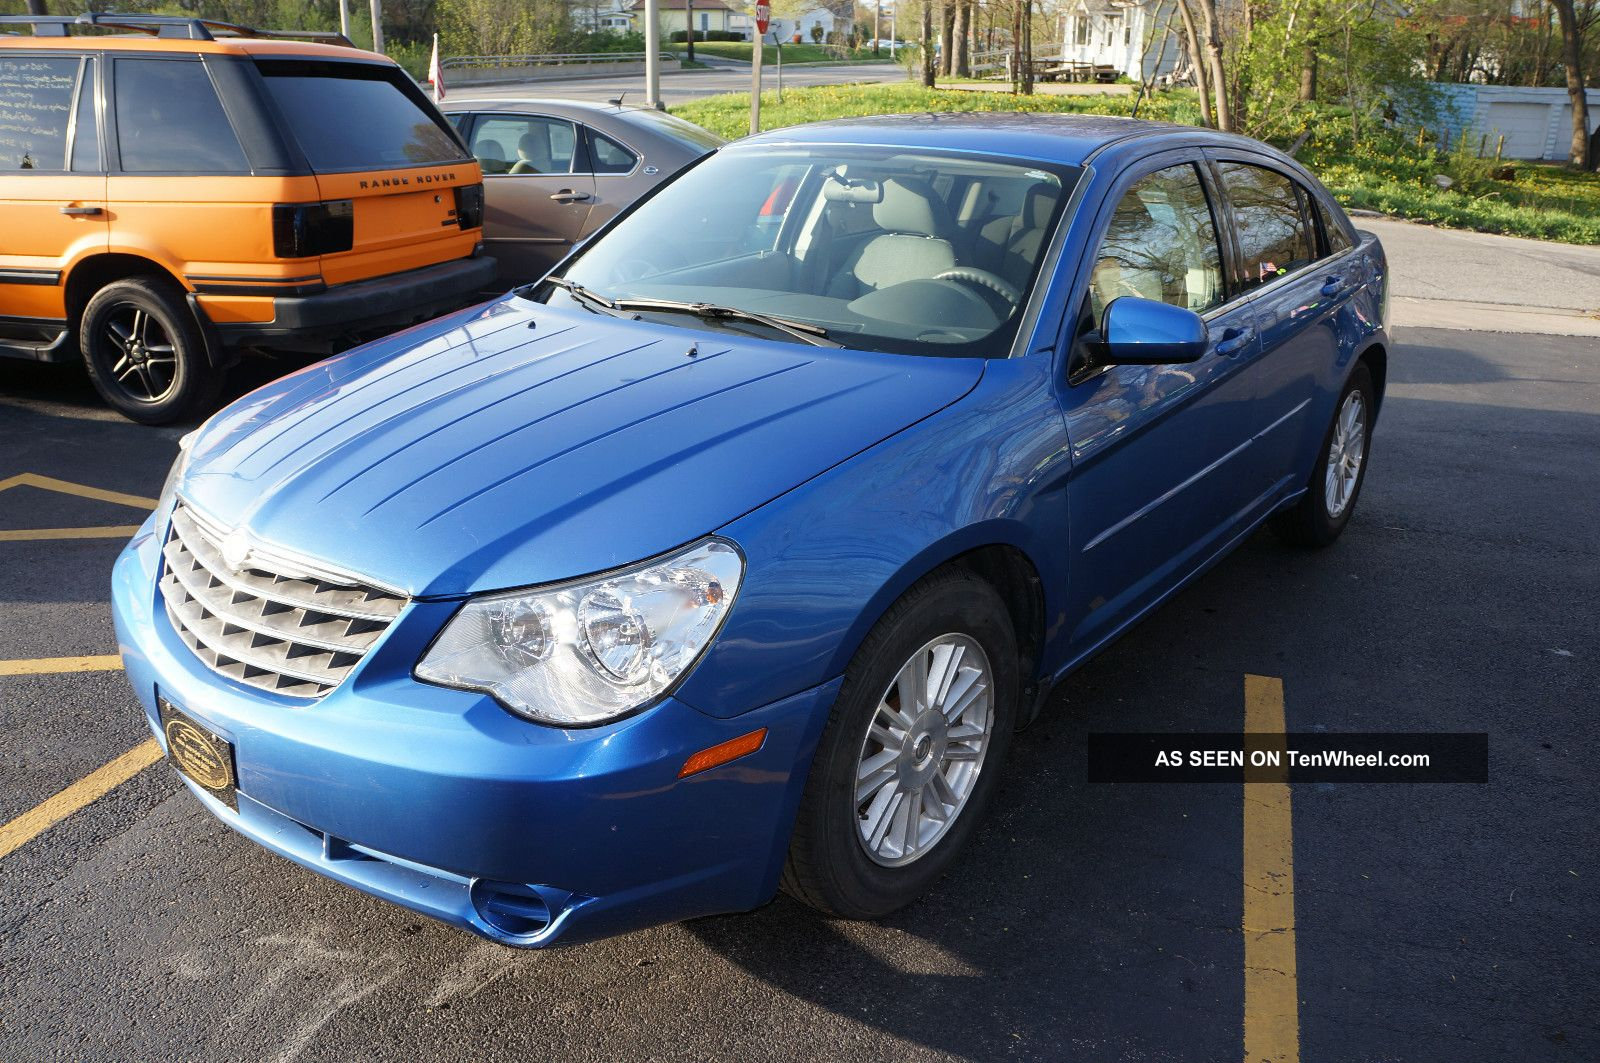 Chrysler Sebring Touring Sedan Door L Lgw on 2007 Chrysler Sebring Touring Sedan